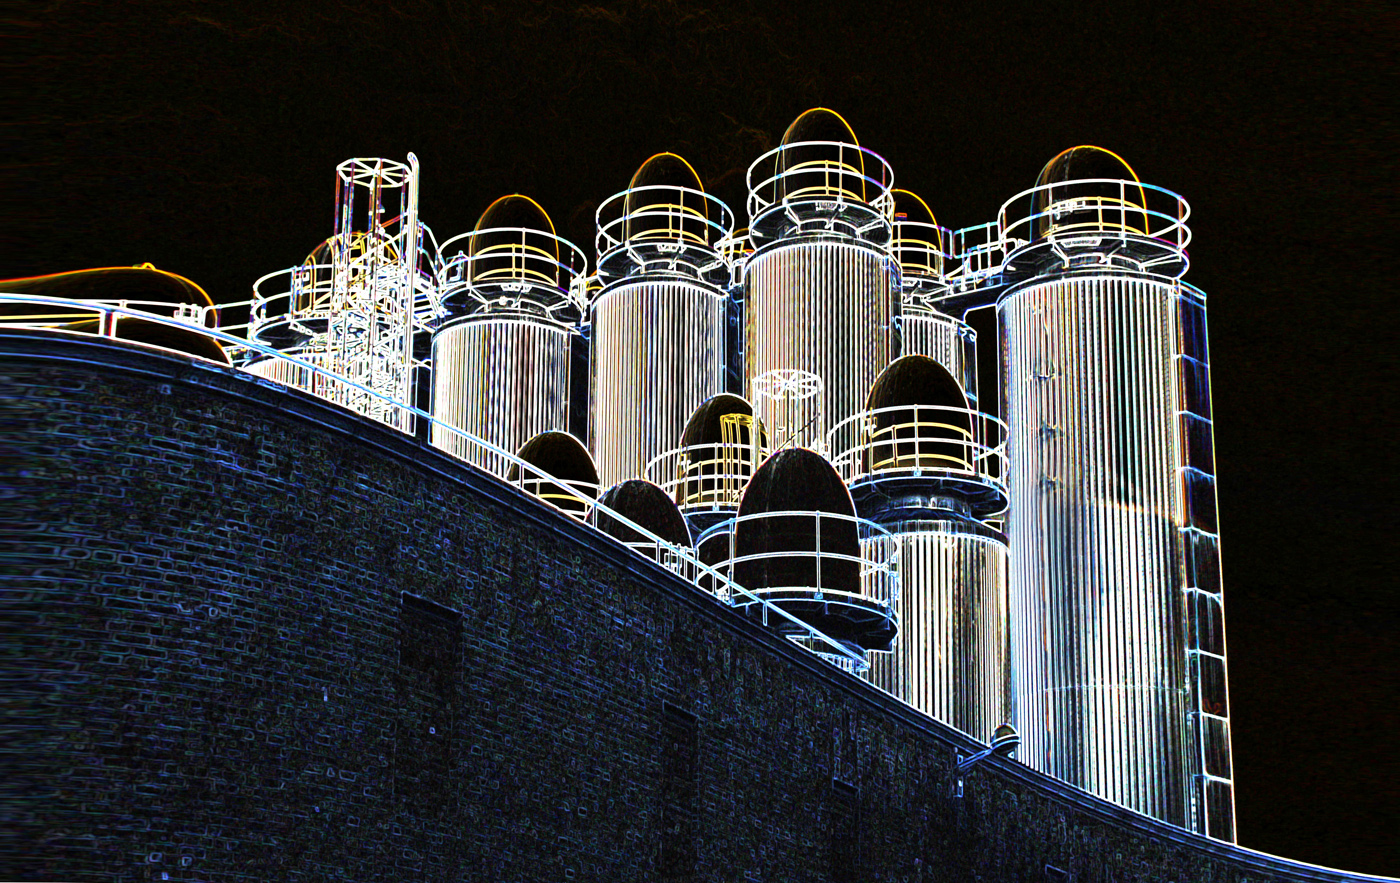 roberta houston - Guinness Brewery